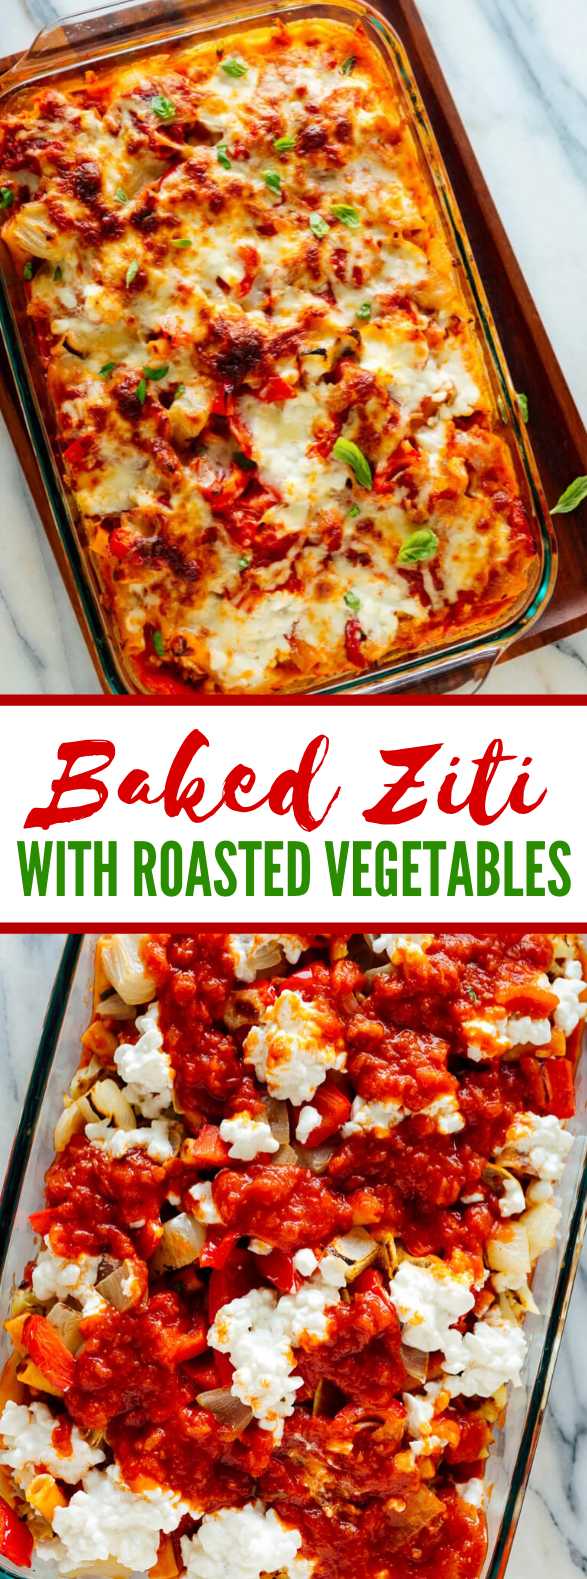 Baked Ziti with Roasted Vegetables #vegetarian #pasta